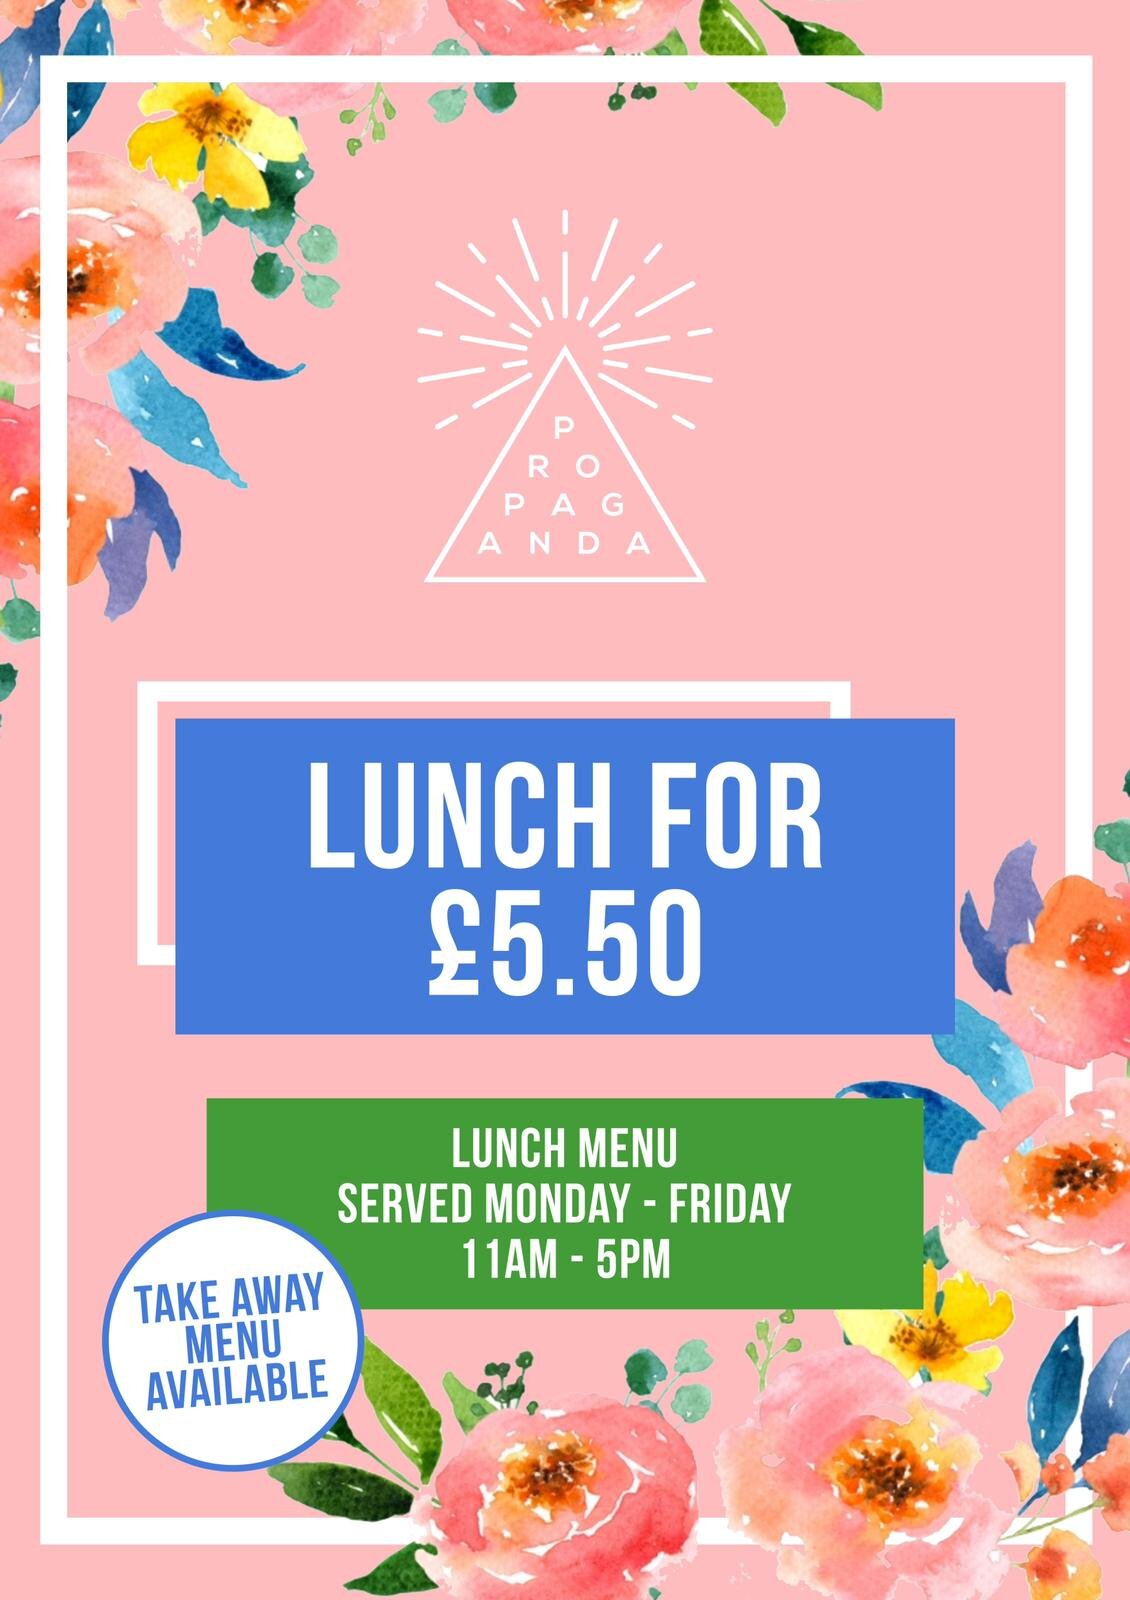 Lunch From £5.50 - Monday - Friday